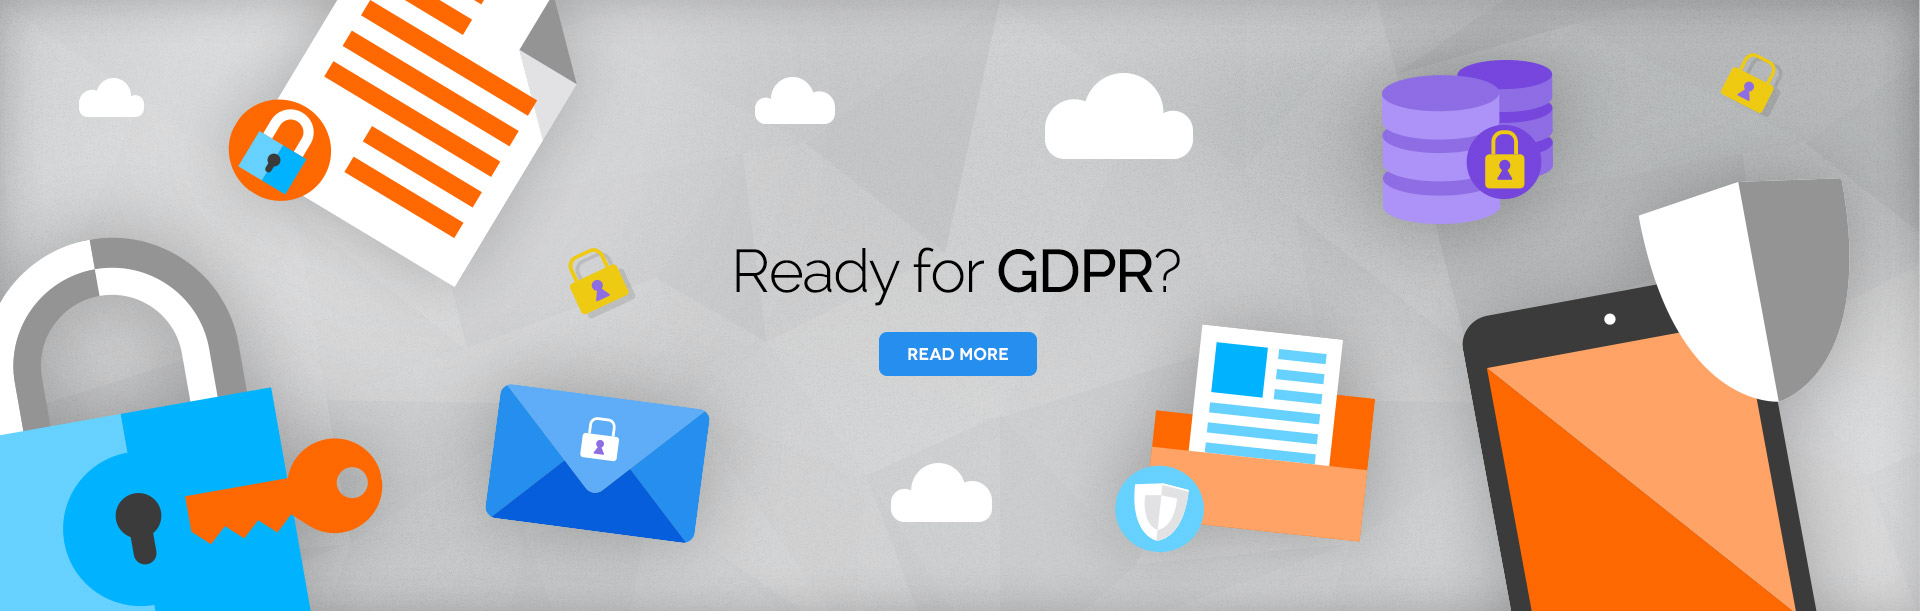 Ready for GDPR?